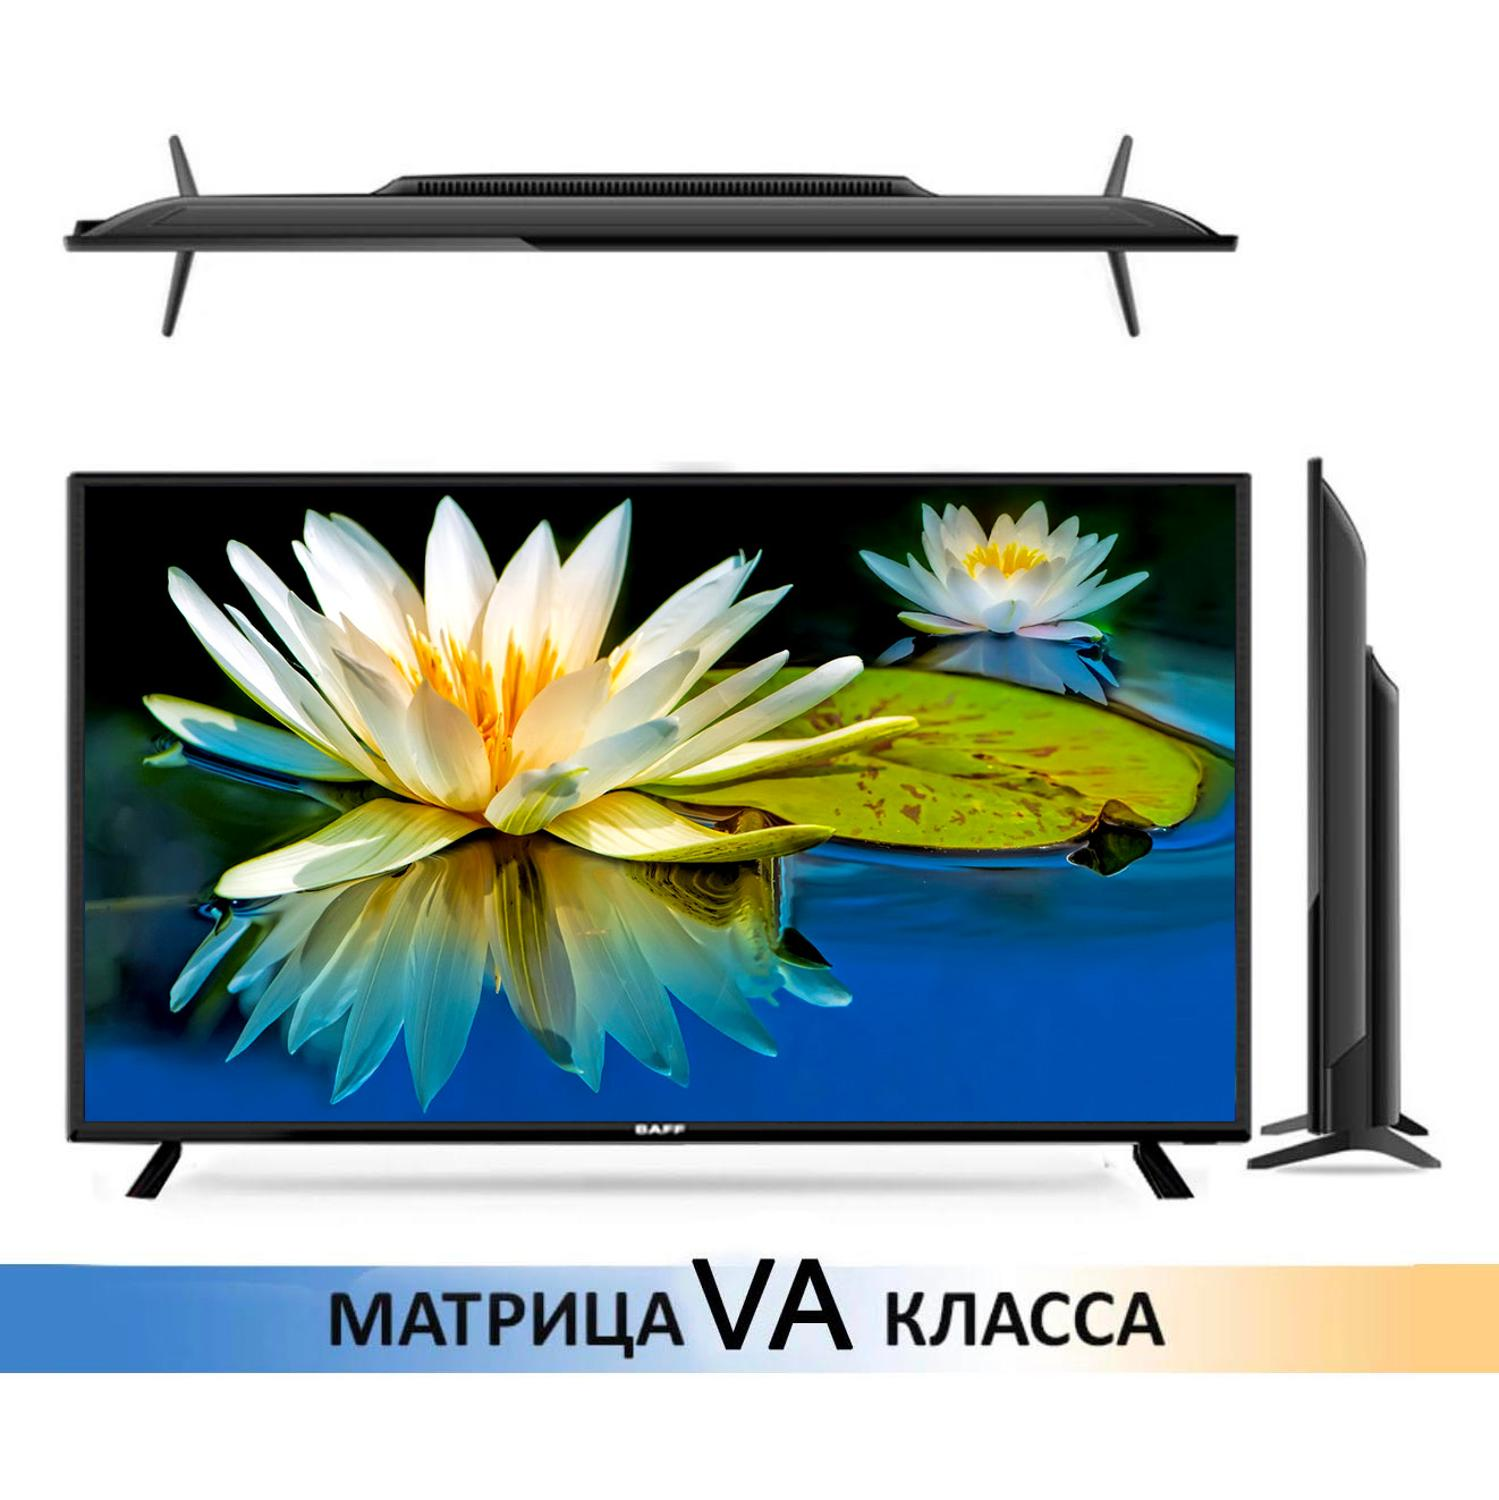 TV SMART TV Ultra HD 4K 55 inch BAFF 55 4KTV-ATSr